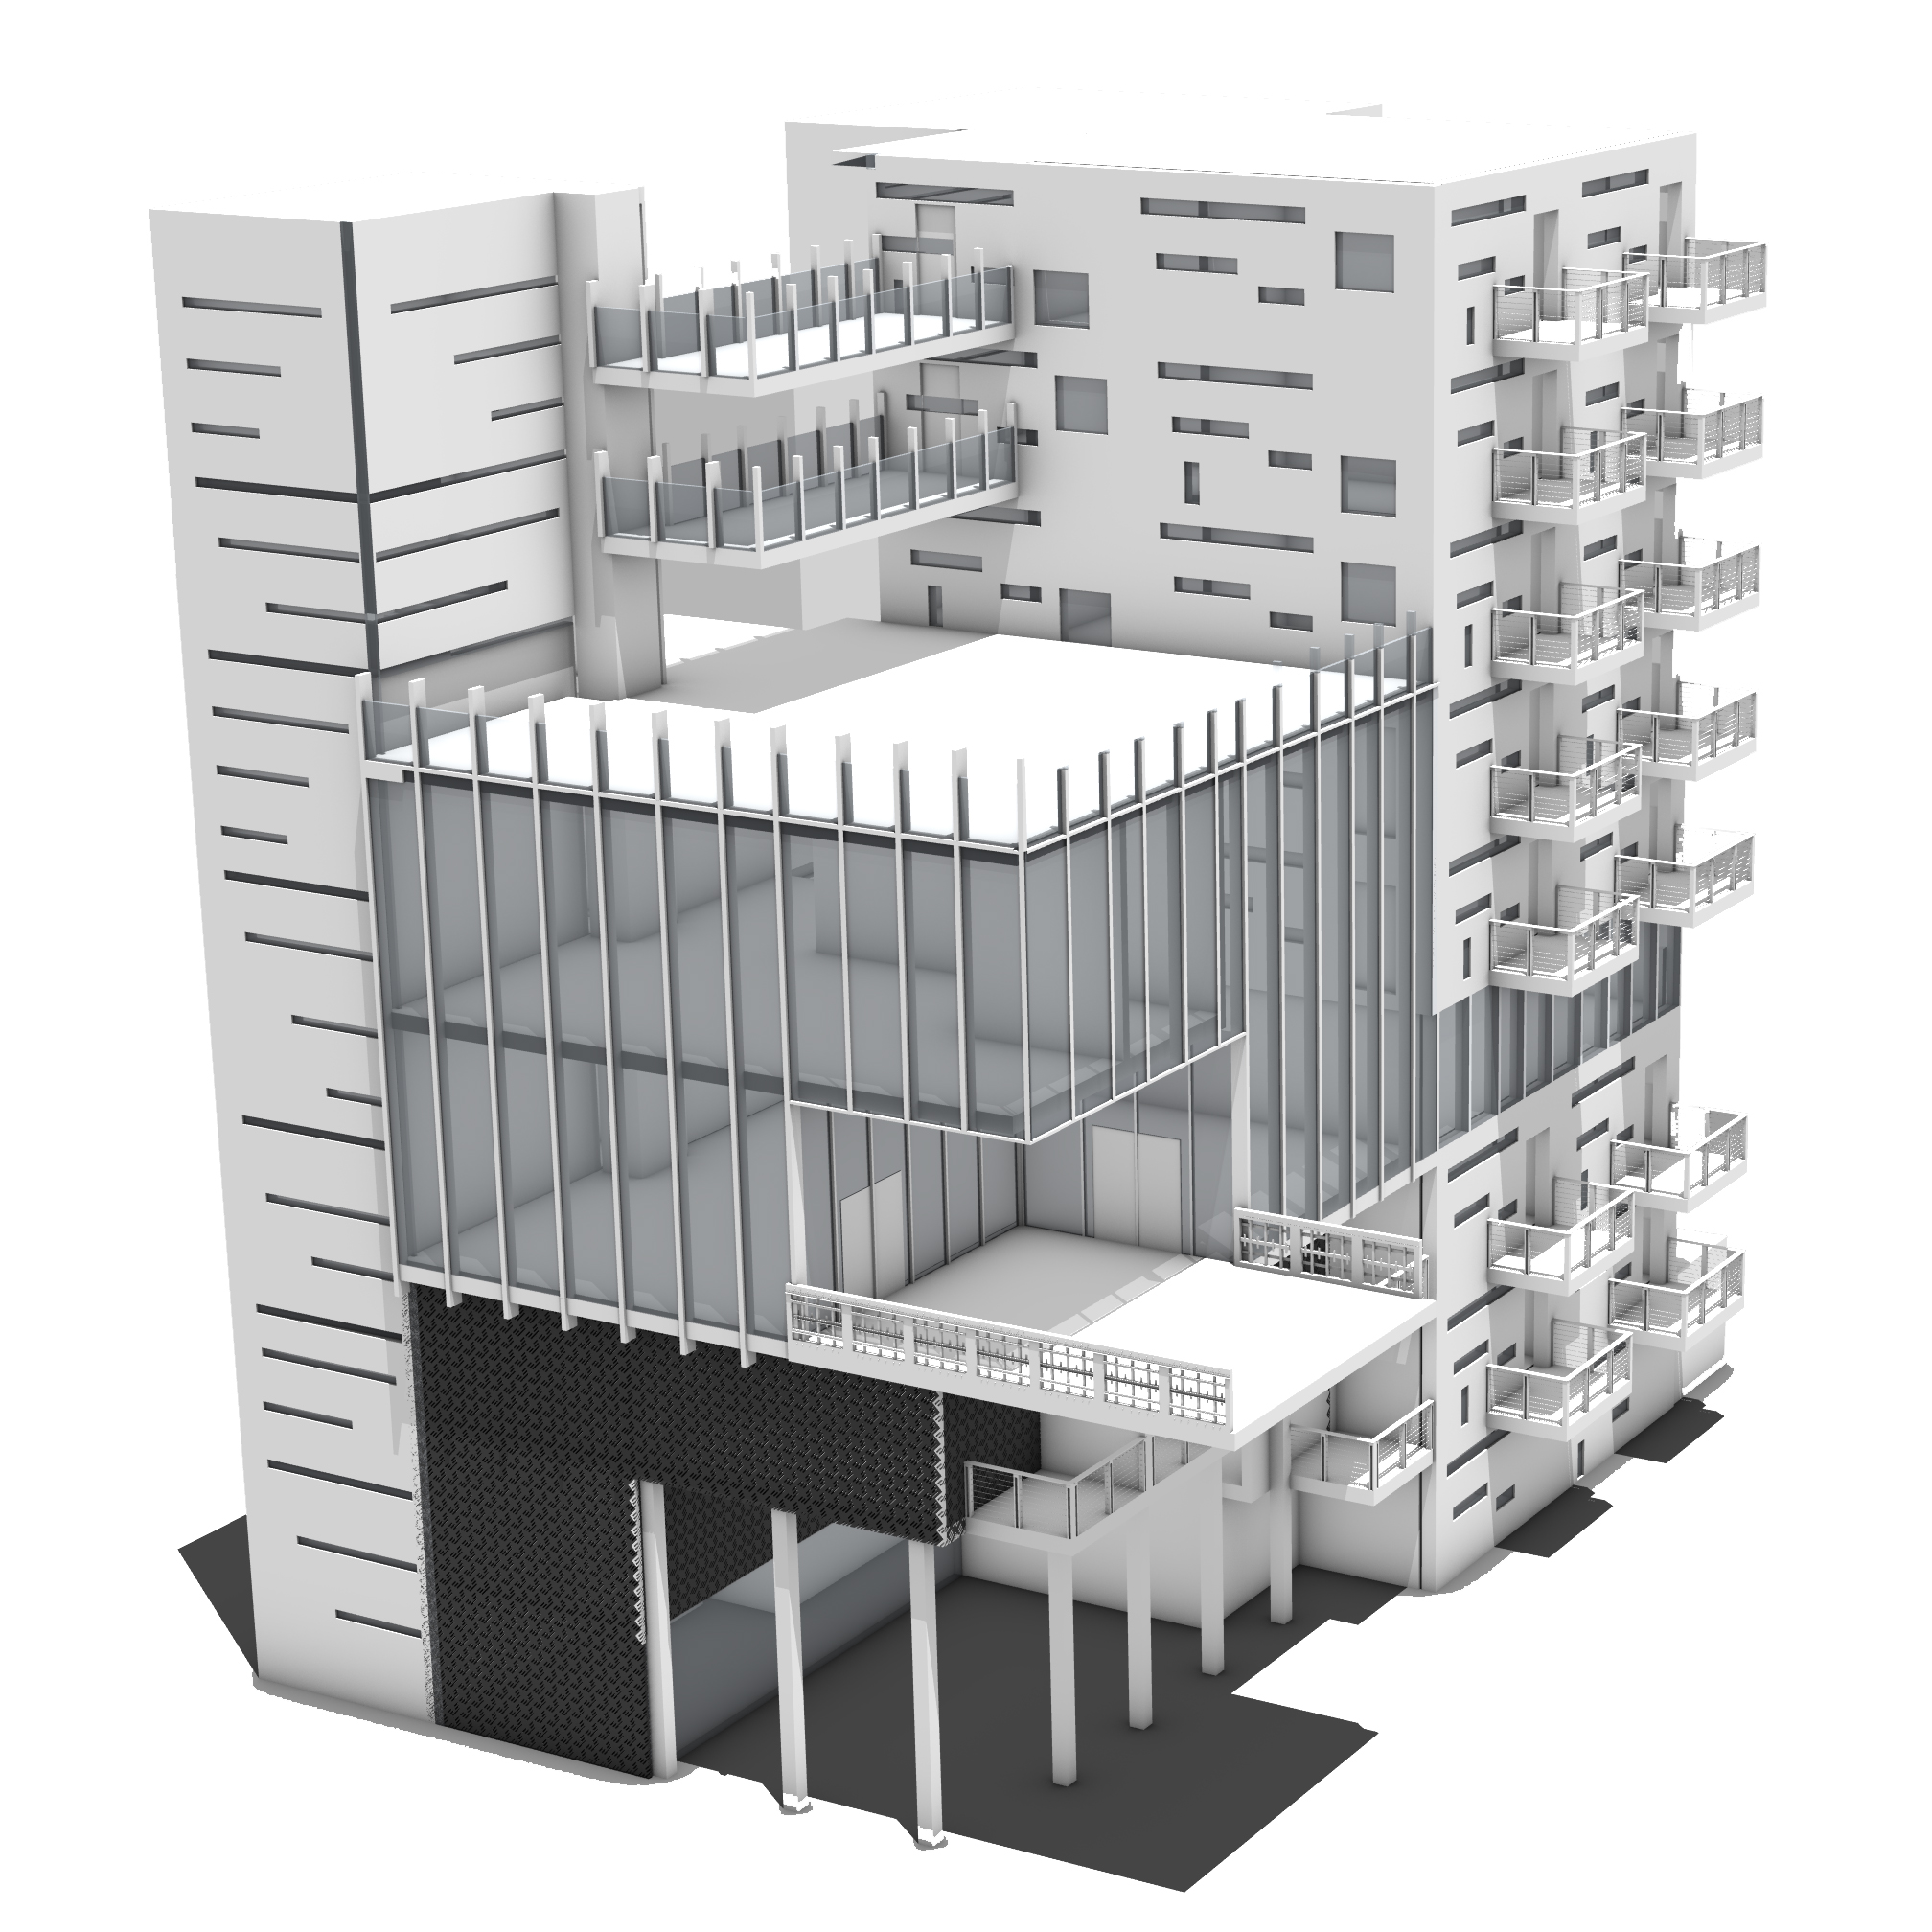 OUT OF SITE BUILDING RENDERING